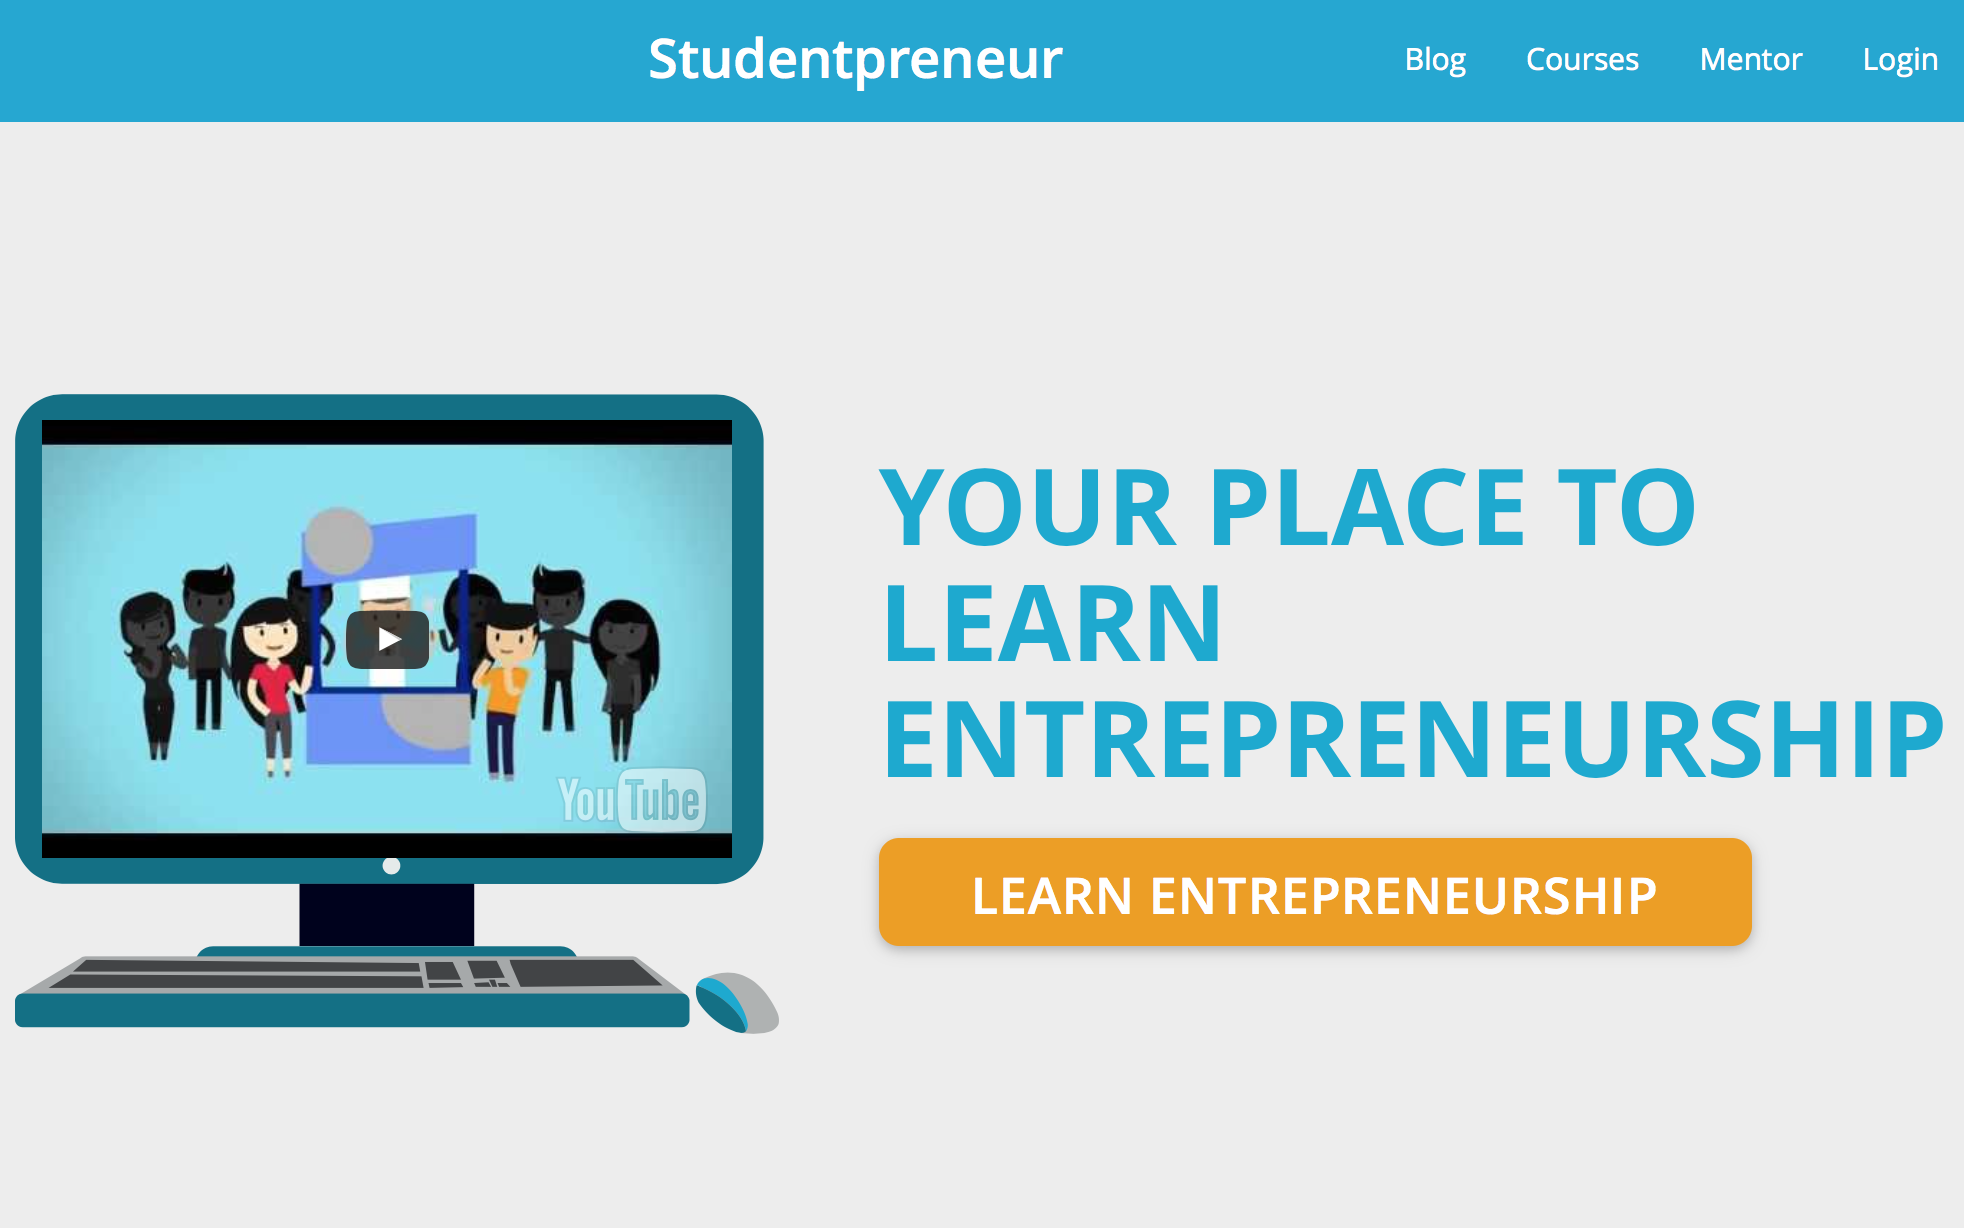 Studentpreneur Website